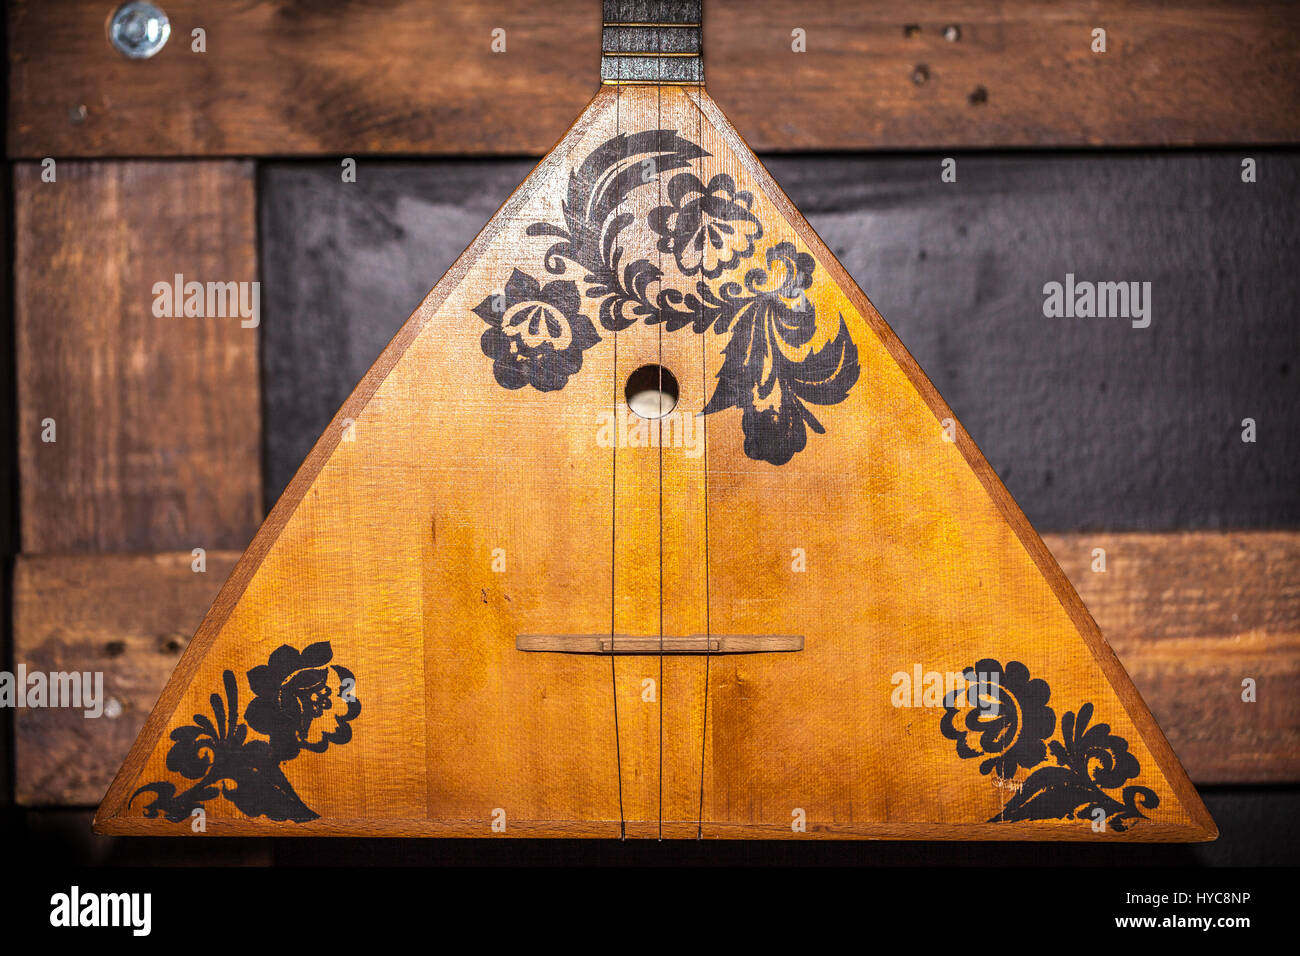 balalaika musical instrument - Stock Image